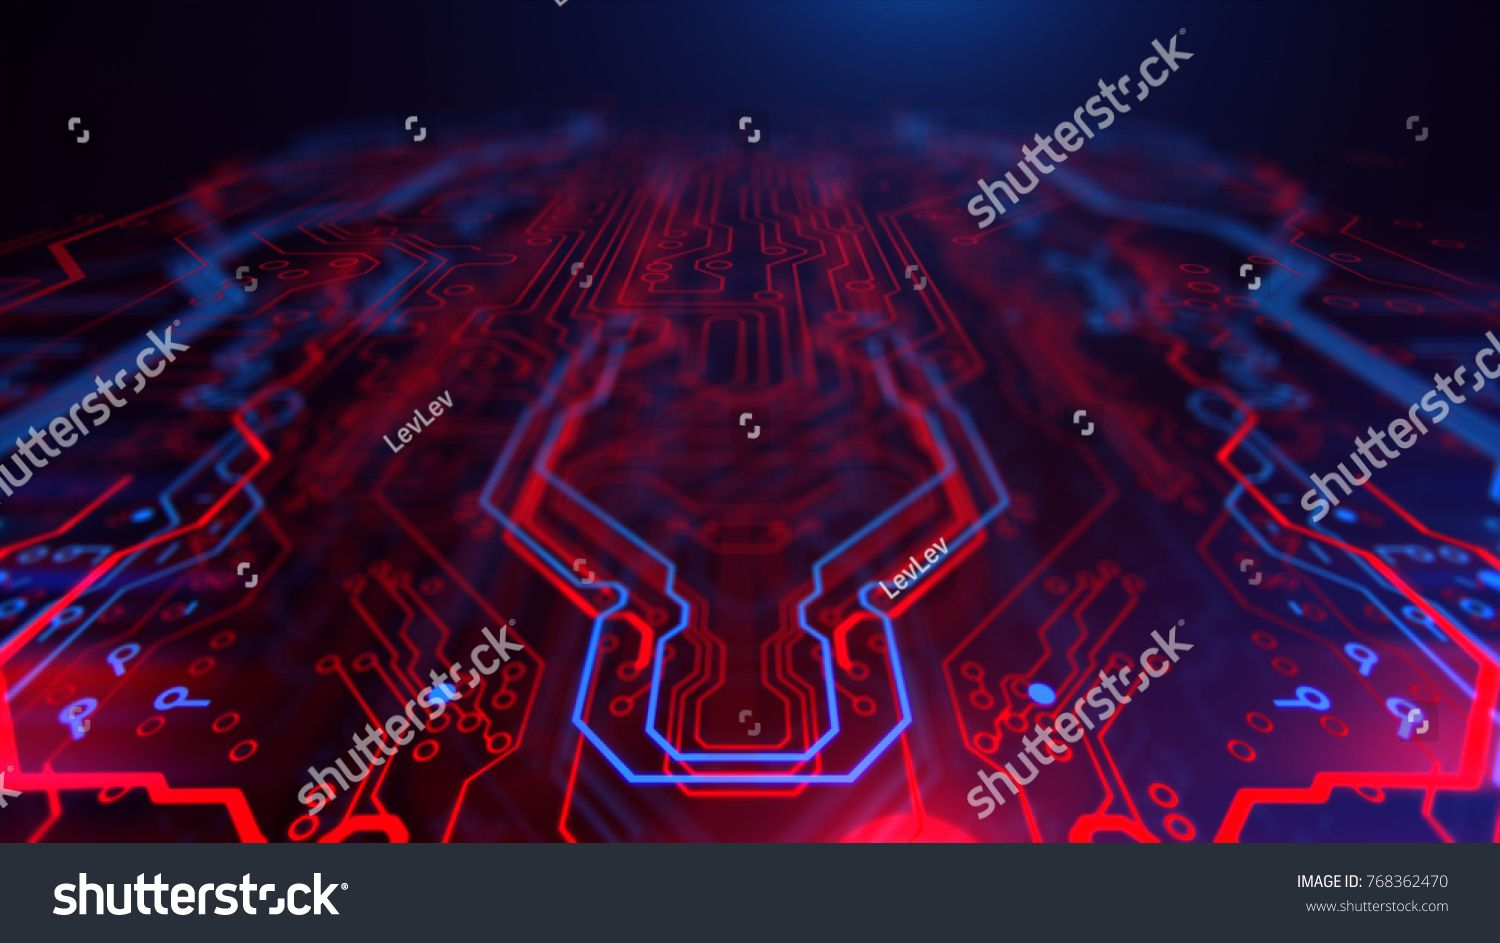 Technology Terminal Background Digital Red Blue Backdrop Printed Circuit Board Technology Wallpaper 3d Ill Blue Backdrops Technology Wallpaper Red And Blue